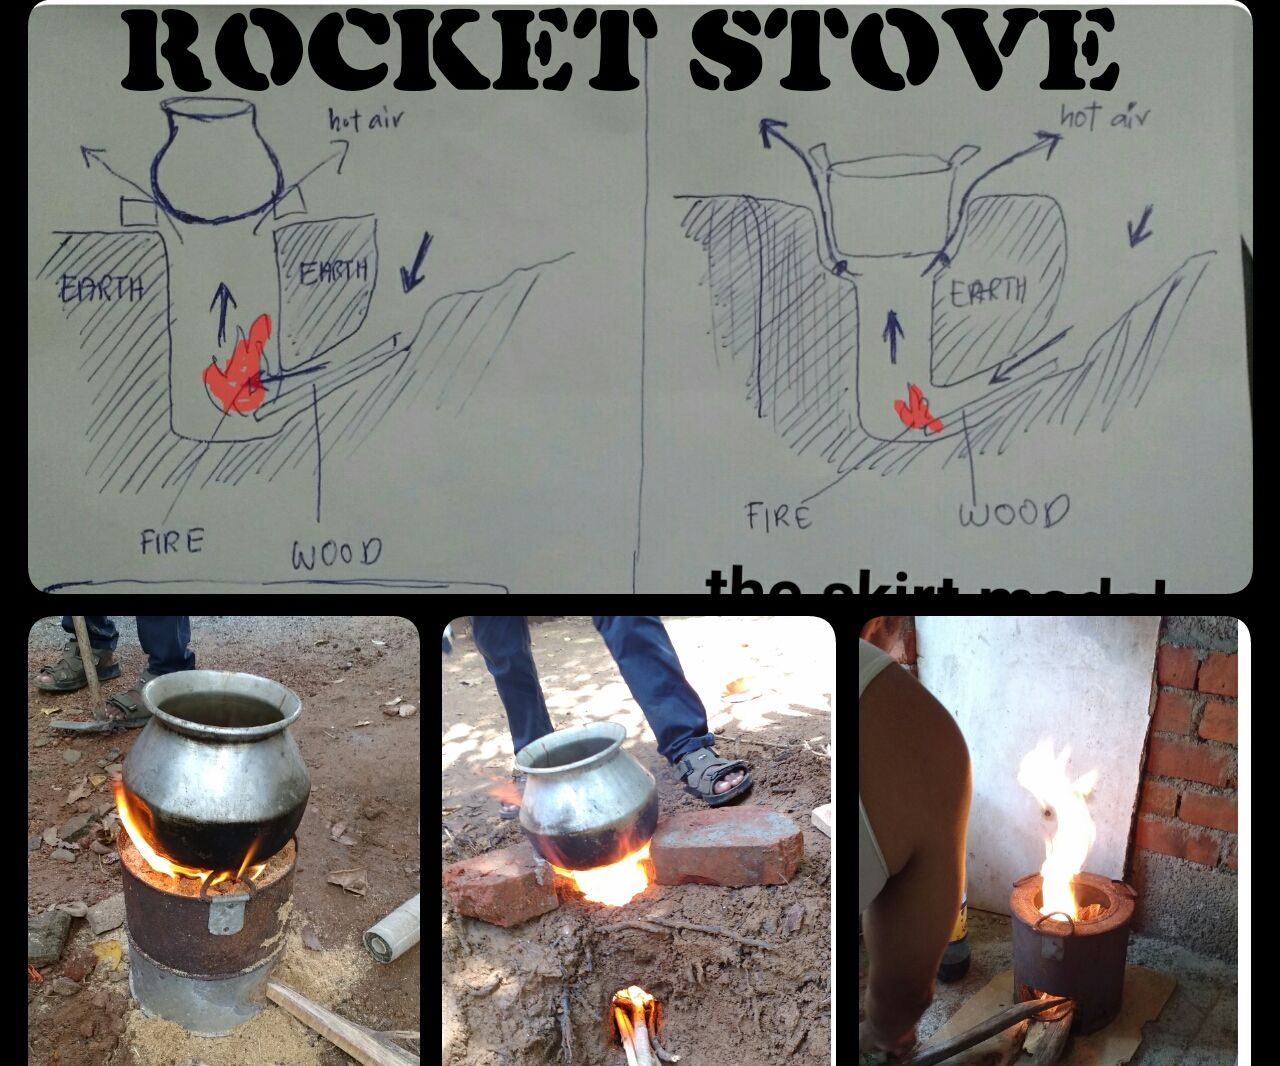 RoCkeT StOvE(one in the ground & a usual one)